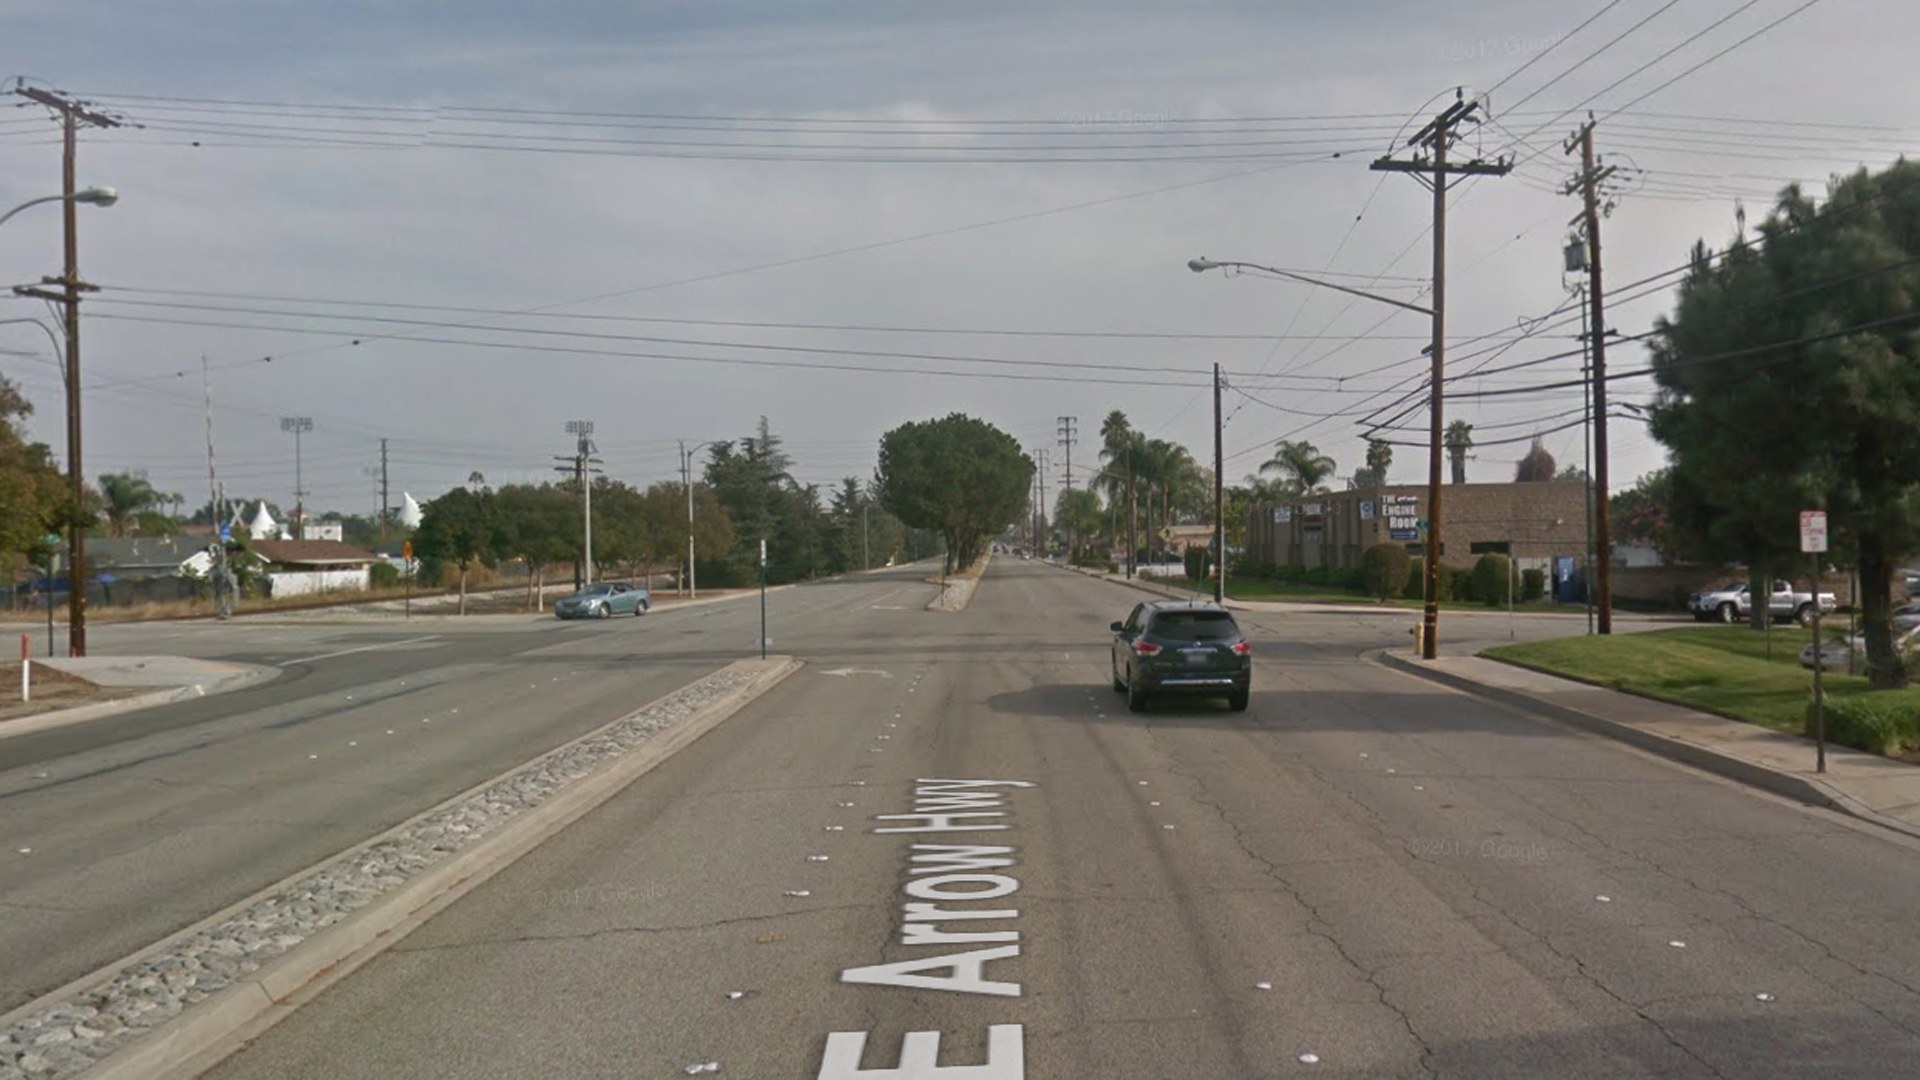 The intersection of Arrow Highway and A Street in La Verne, as pictured in a Google Street View image in November of 2016.